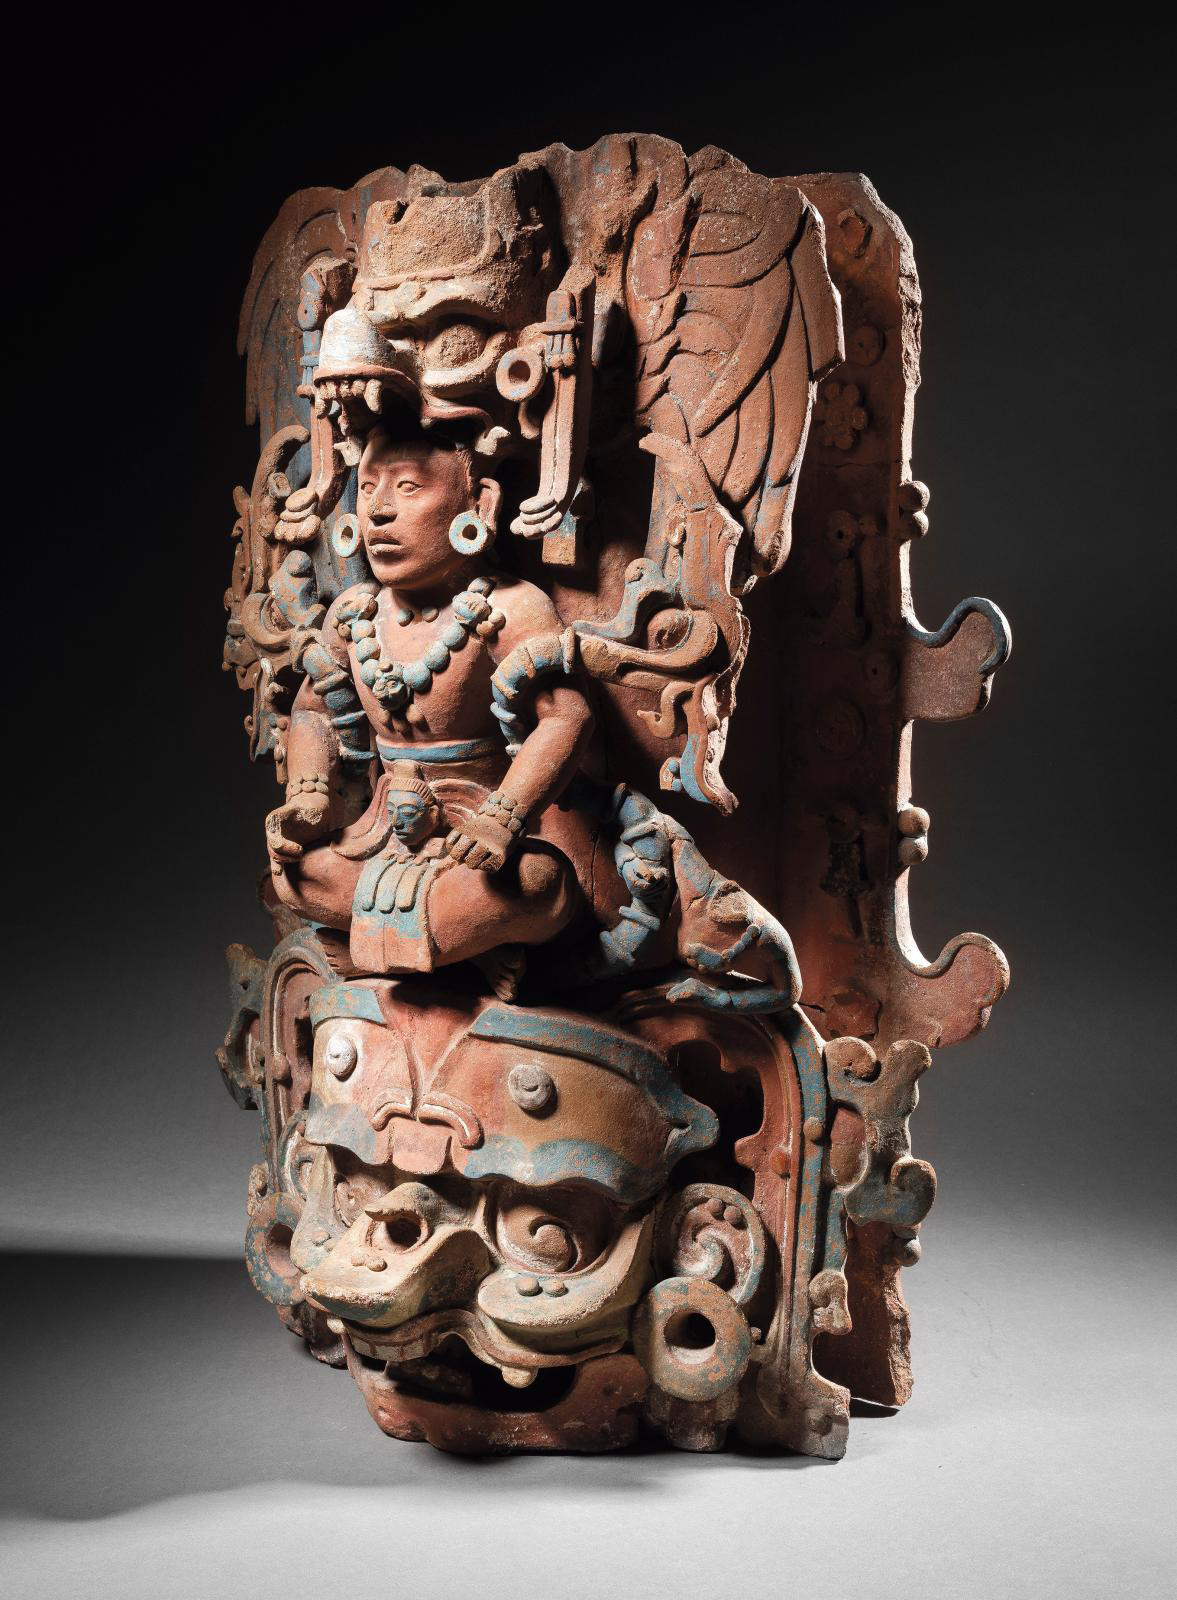 Mexico, Chiapas, Maya culture, 600–900, incense stand depicting a seated lord, polychrome modeled ceramic, 58 x 40 x 36 cm/22.83 x 15.75 x